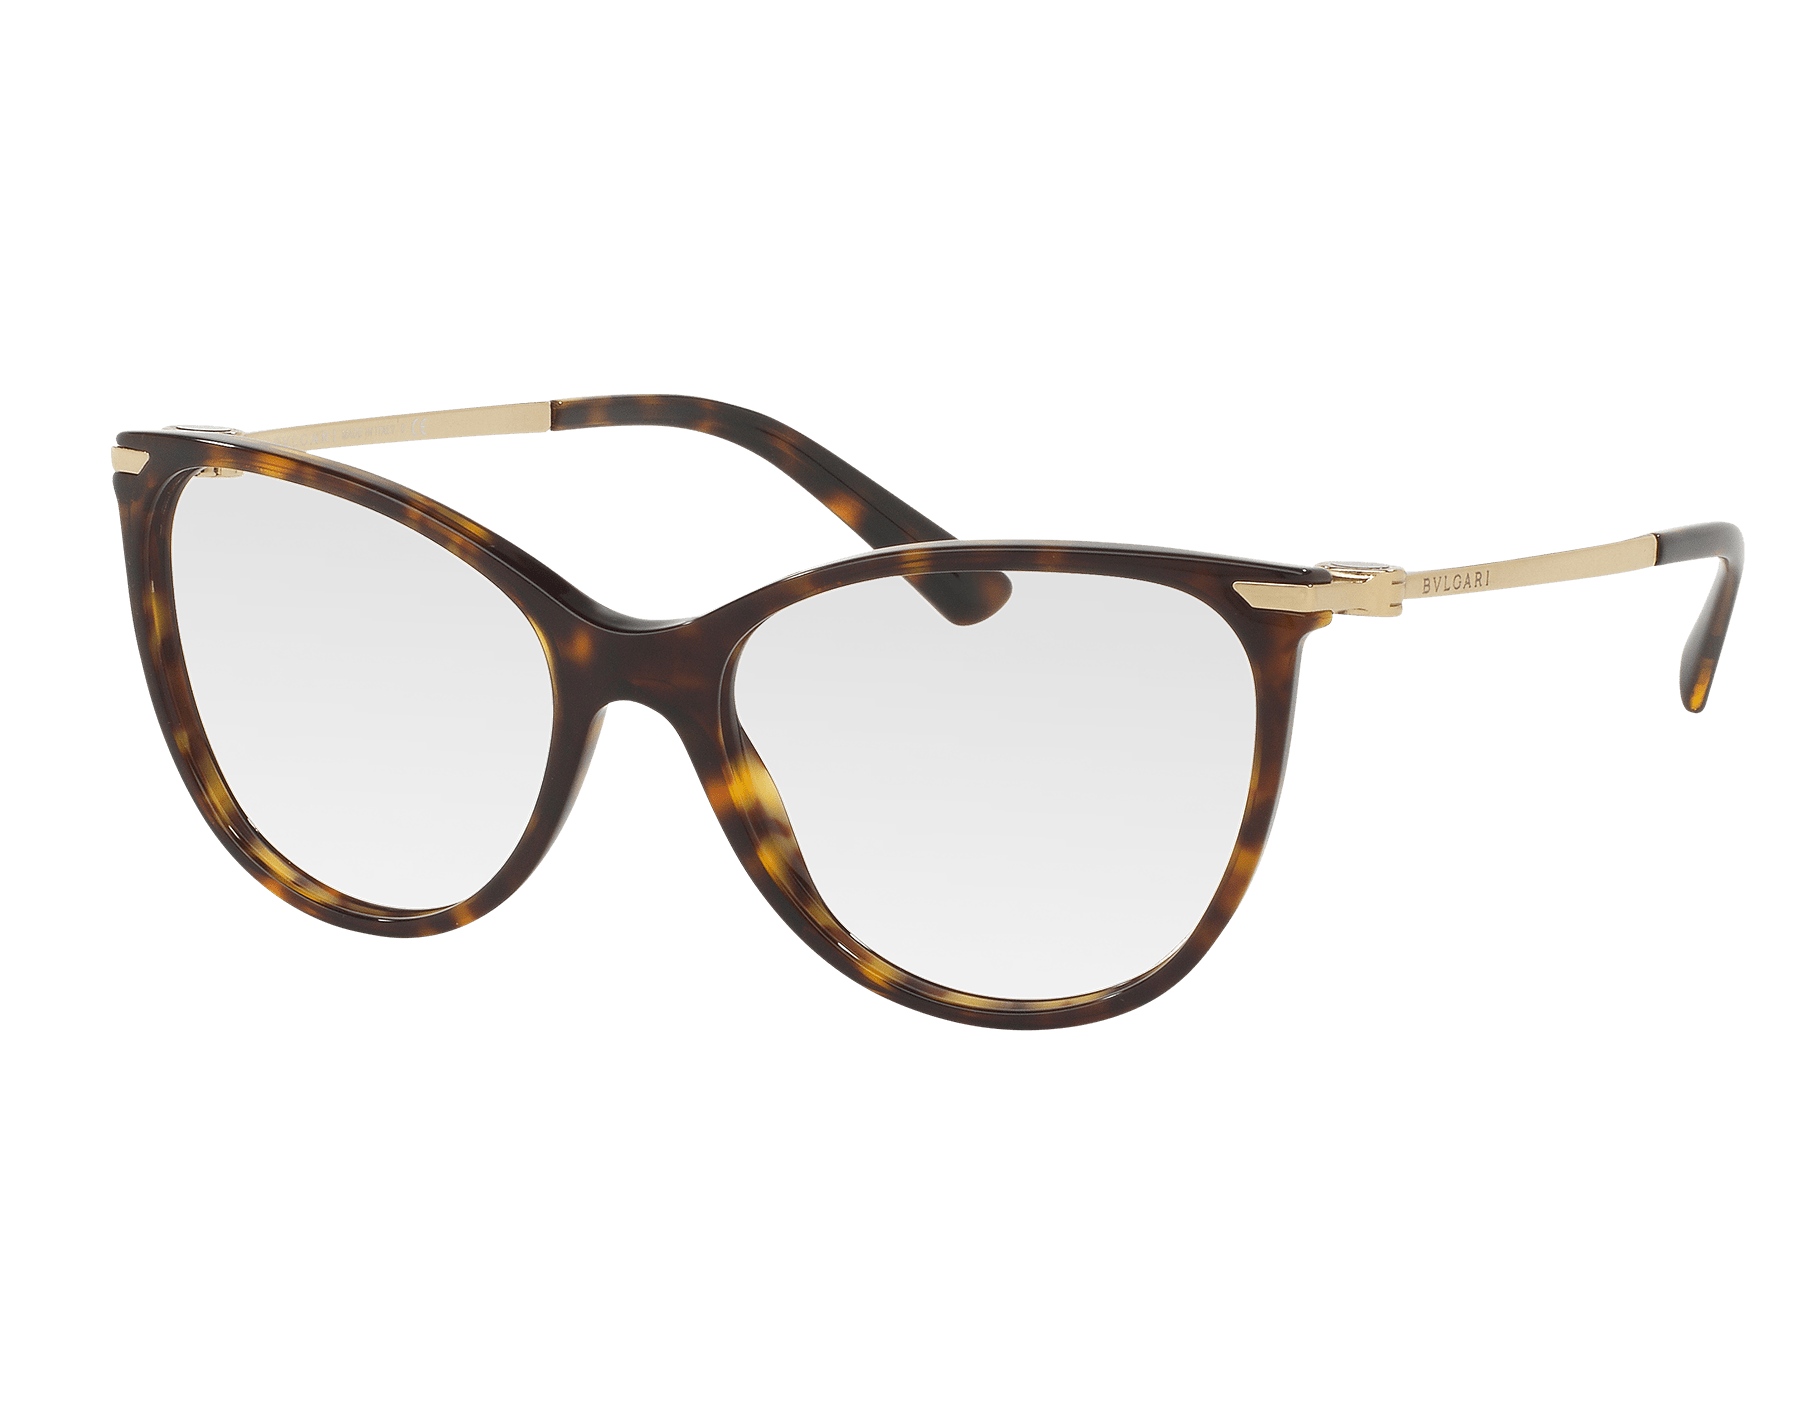 Well balanced round frame for this optical version of the BVLGARI-BVLGARI eyeglasses. The metal temples are adorned with the brand signature and a playful BVLGARI-BVLGARI décor that features enamel details. 903117 image 1